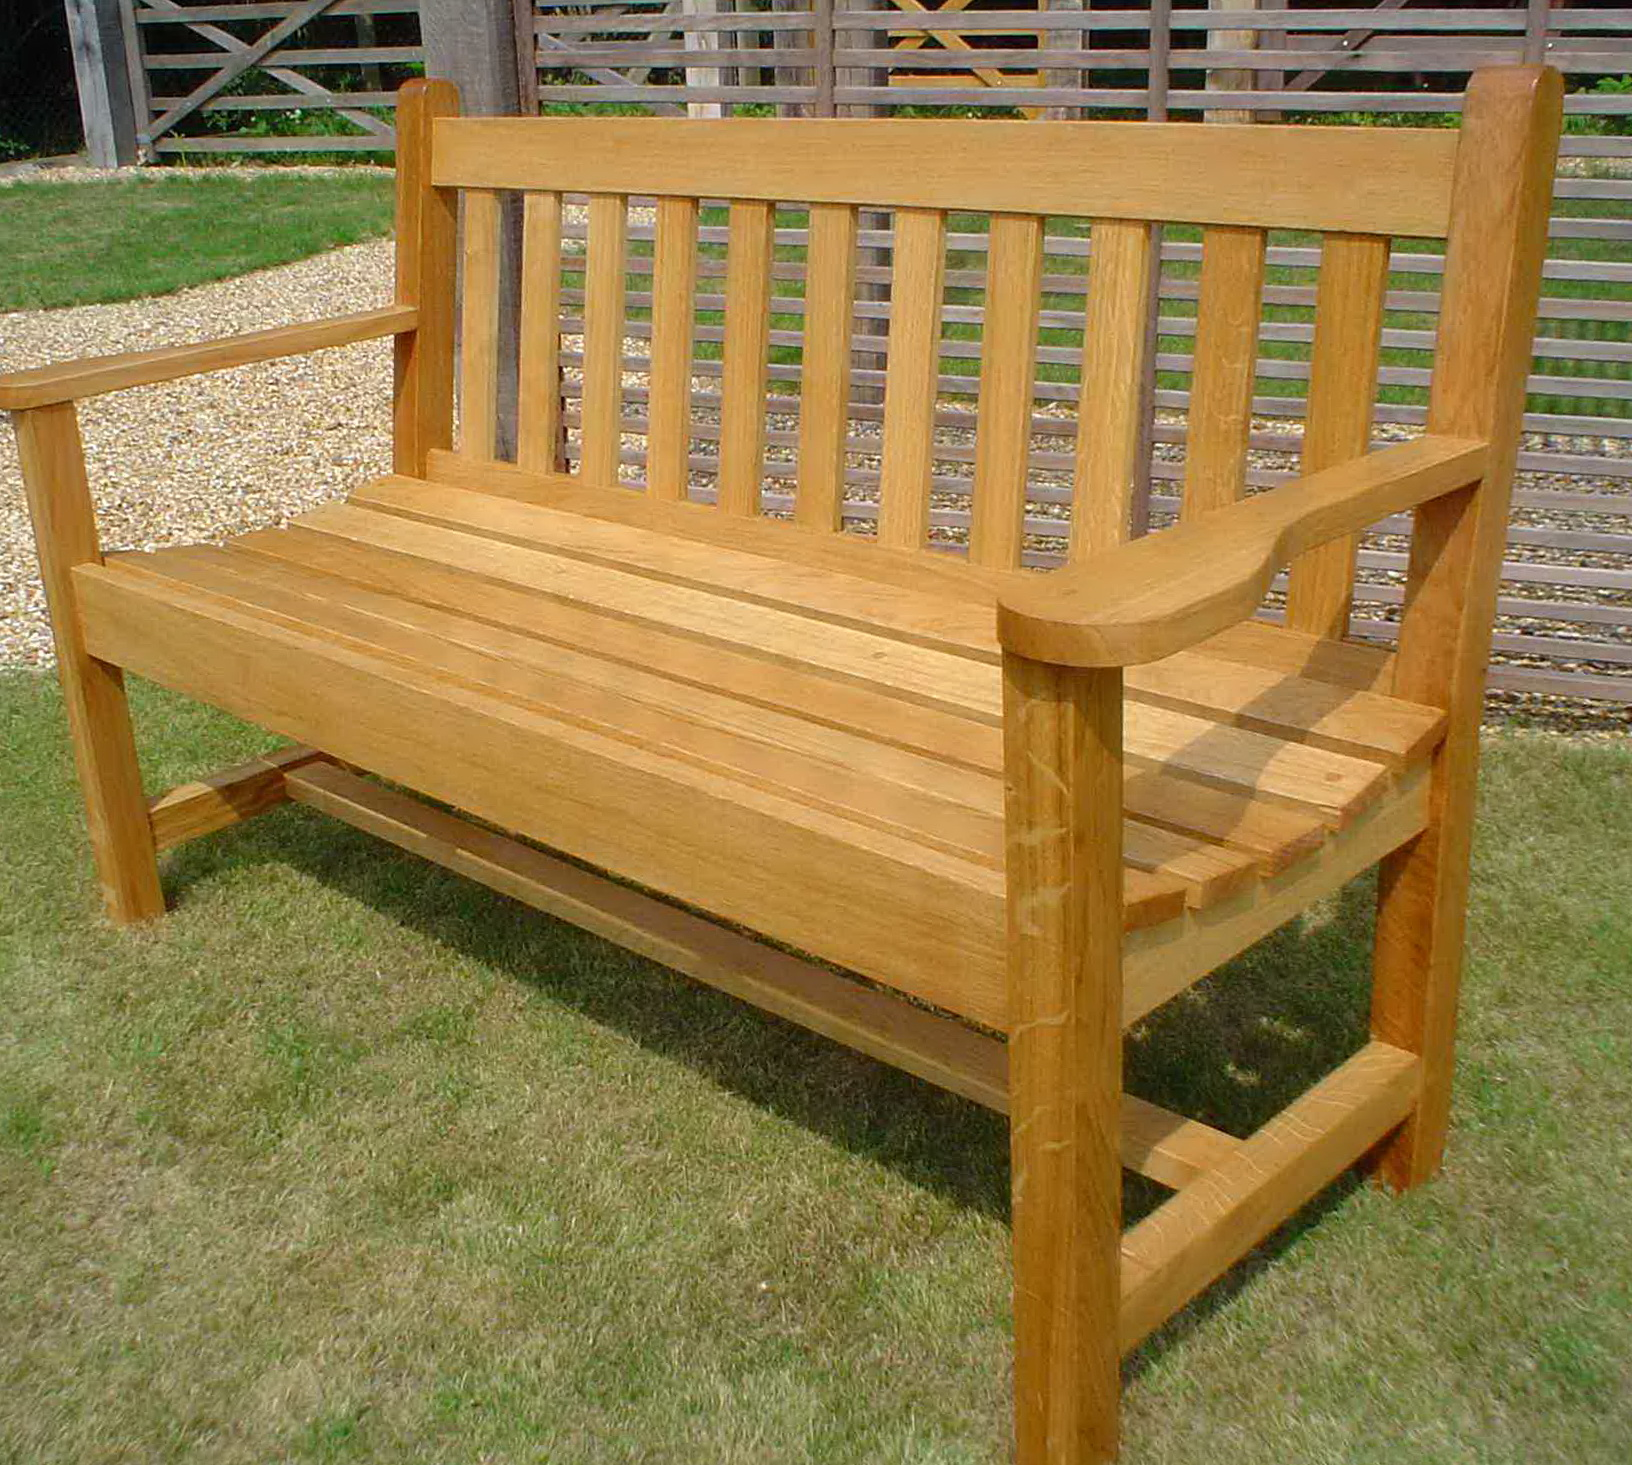 Home design ideas your home reference Wooden bench for sale